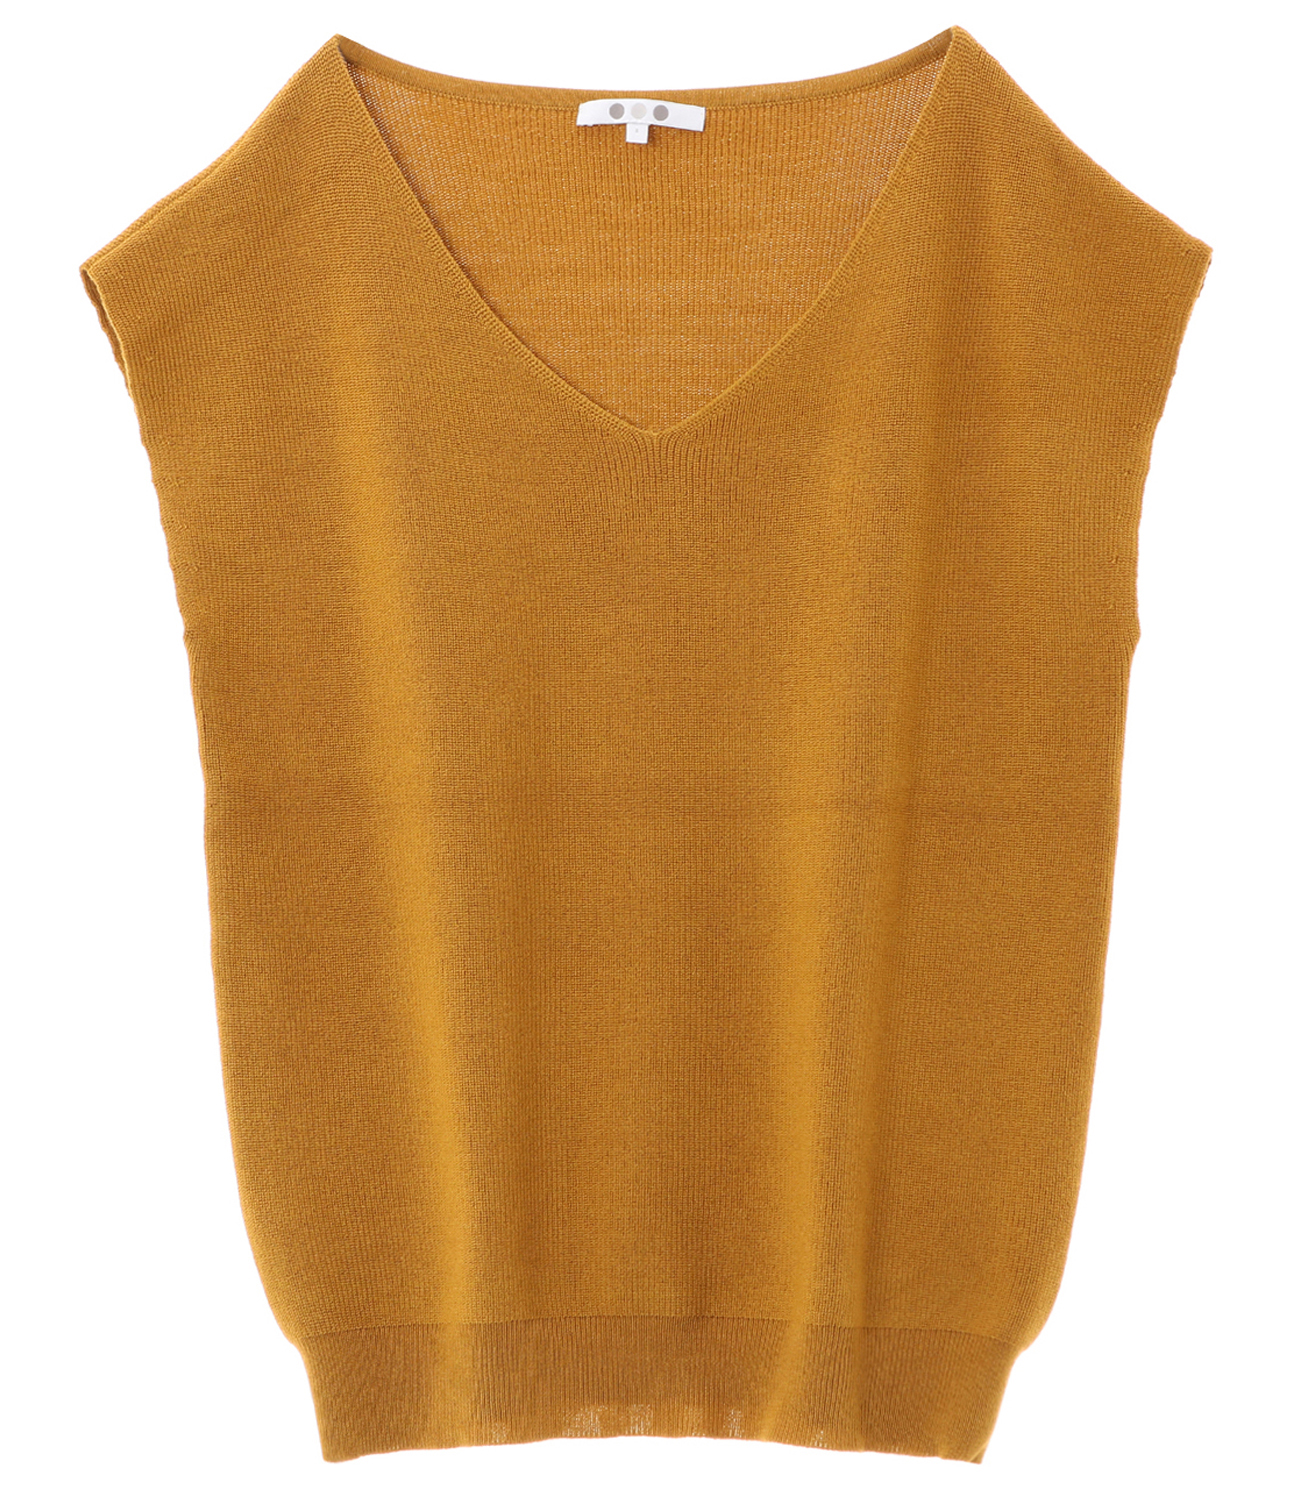 outlast sweater sleeveless vneck 詳細画像 mustard 1